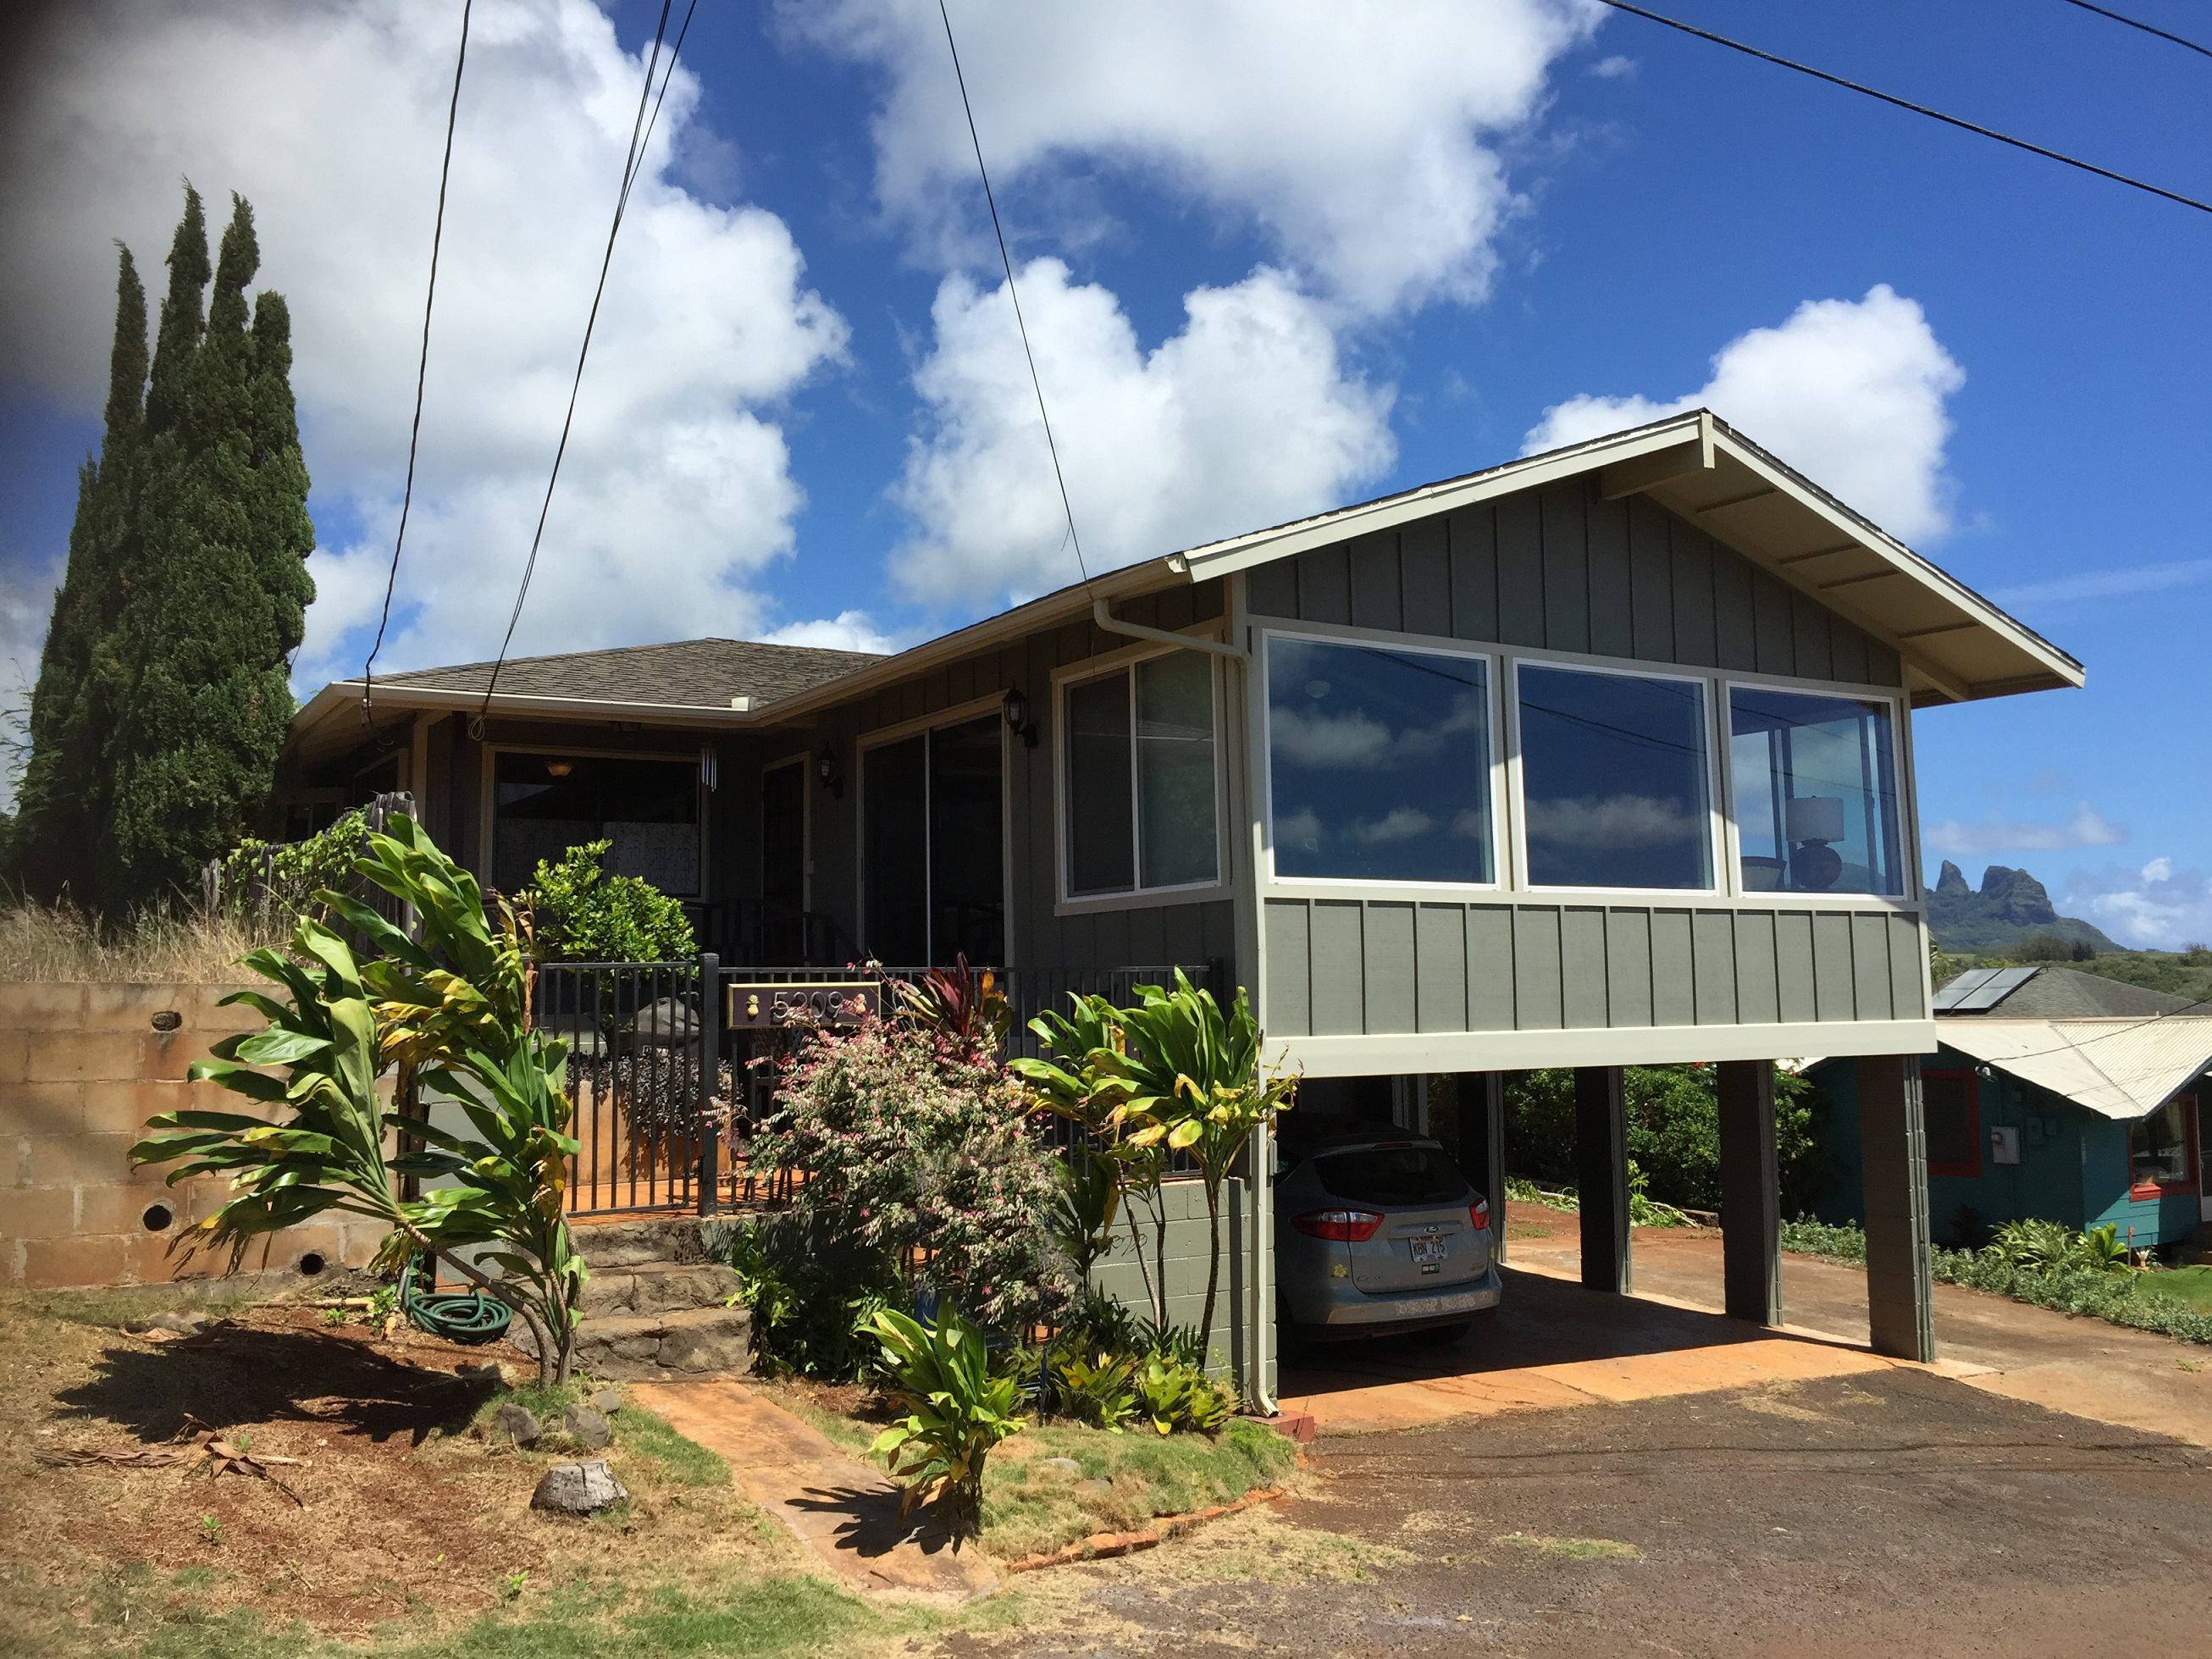 Property For Sale at Wili Rd. Kauai, HI